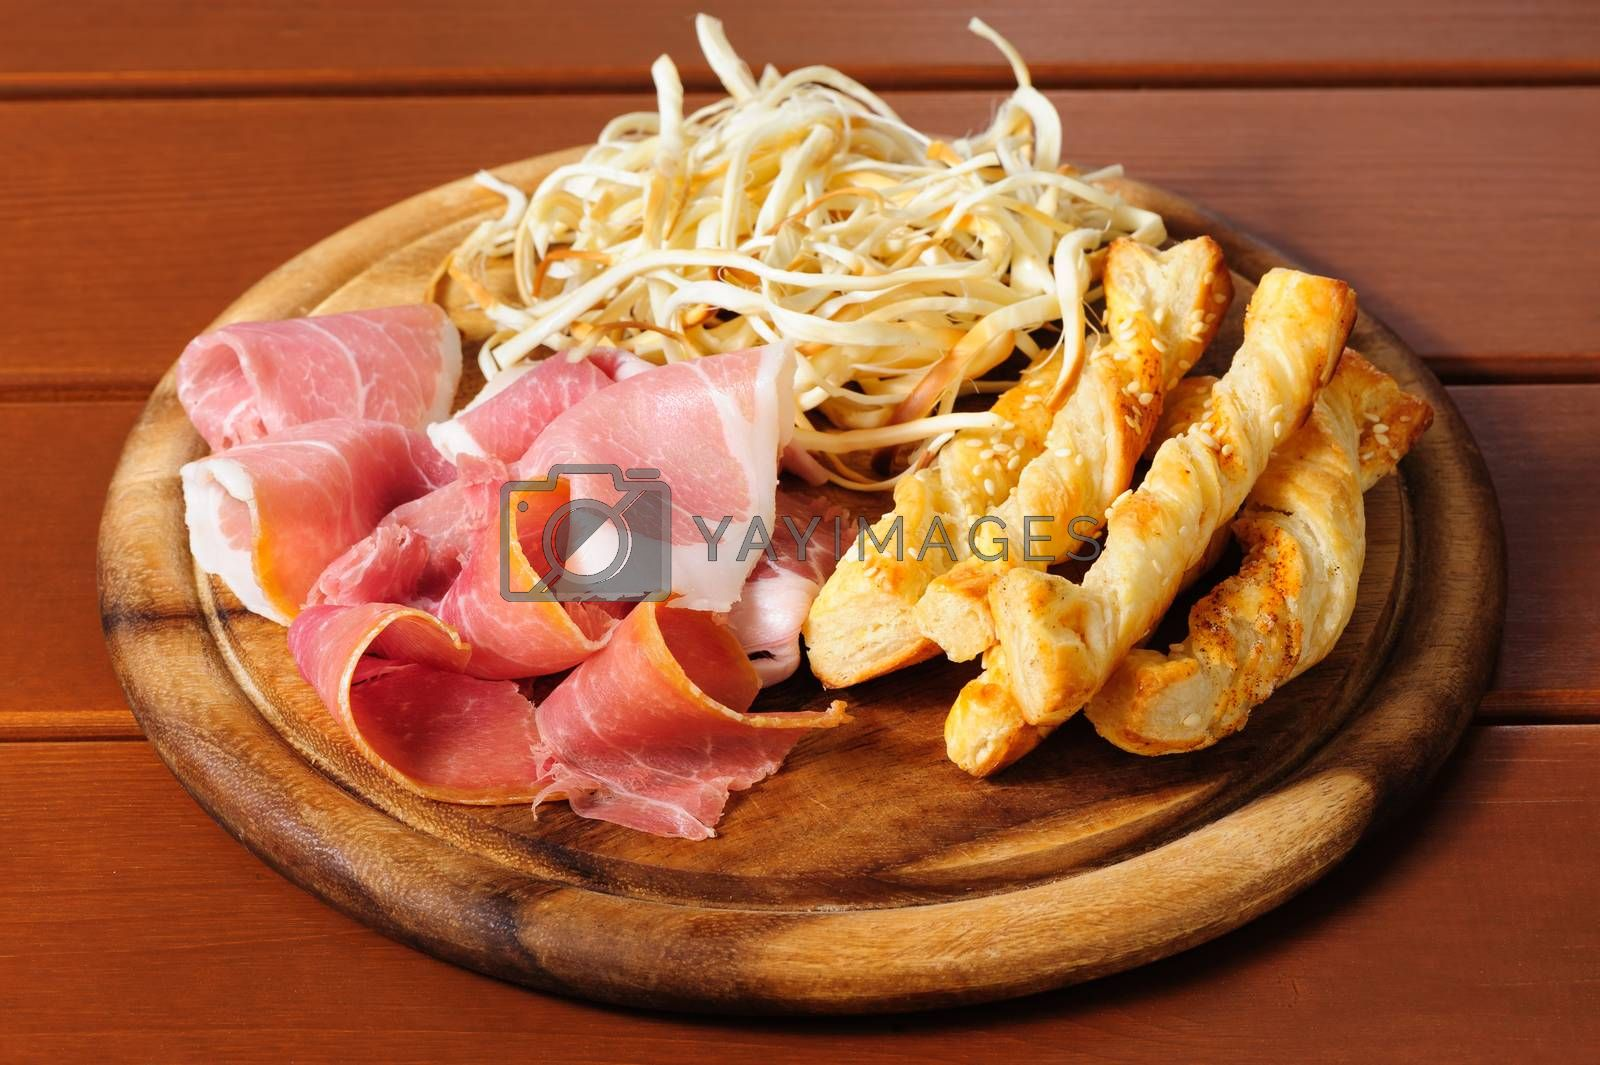 Assorted cold beer snacks on a round wooden board. Dried squid, prosciutto crudo and salted crisps